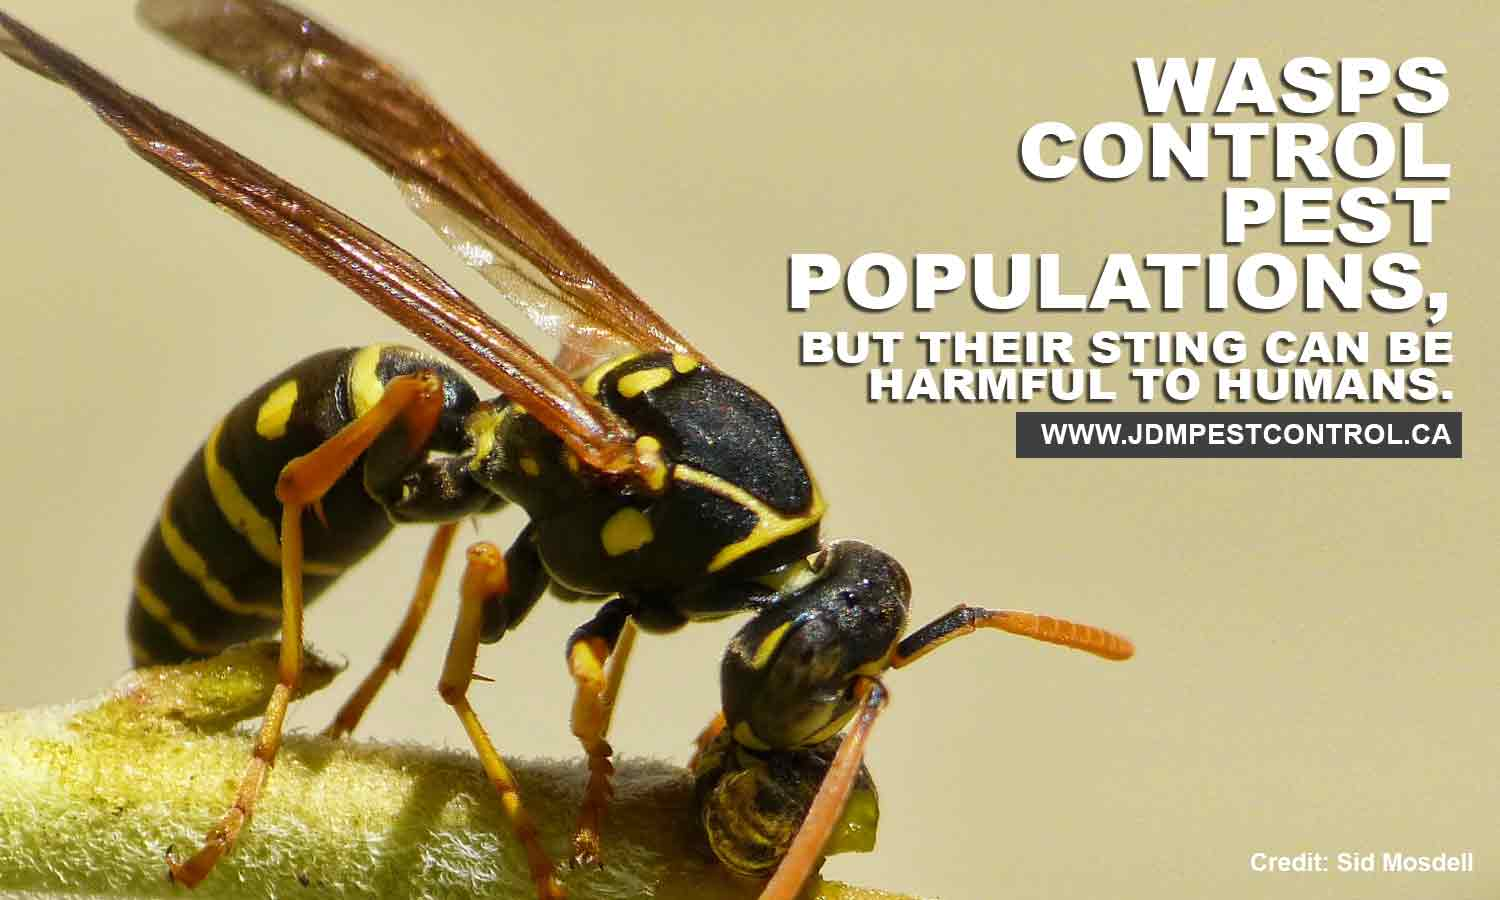 Wasps control pest populations, but their sting can be harmful to humans.